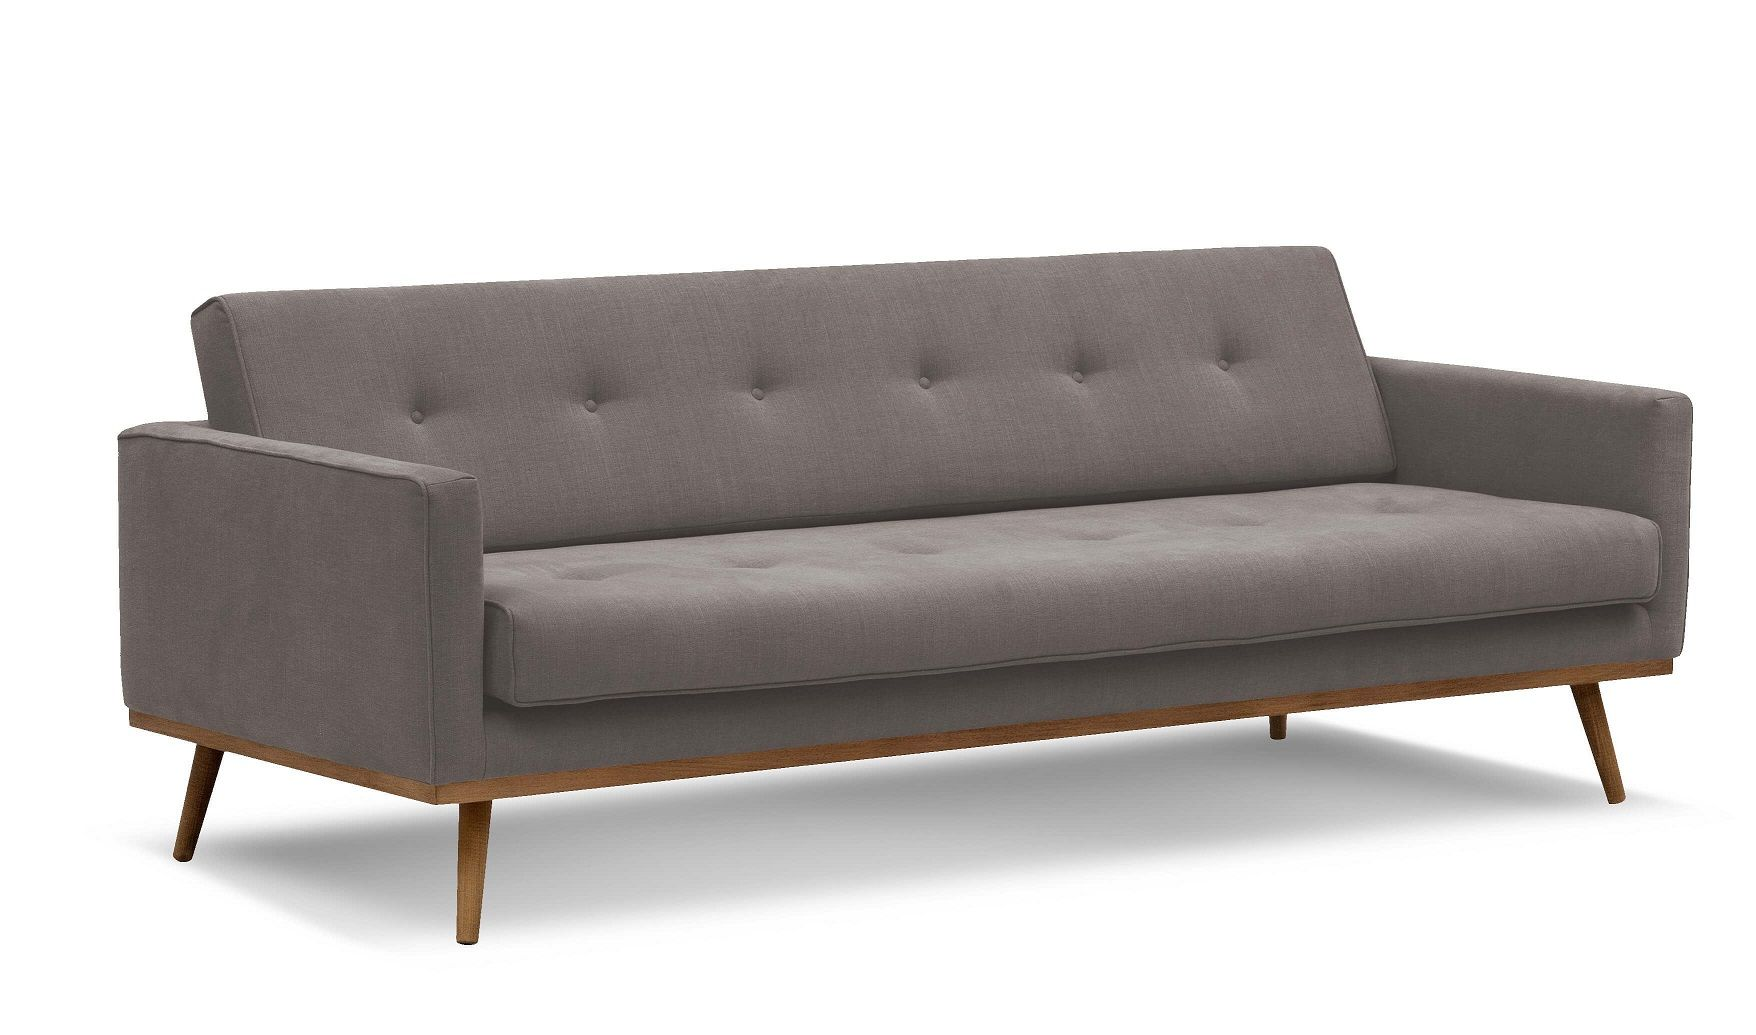 Sofa Klematisar Z Funkcja Spania 3 Osobowa Furniture Home Decor